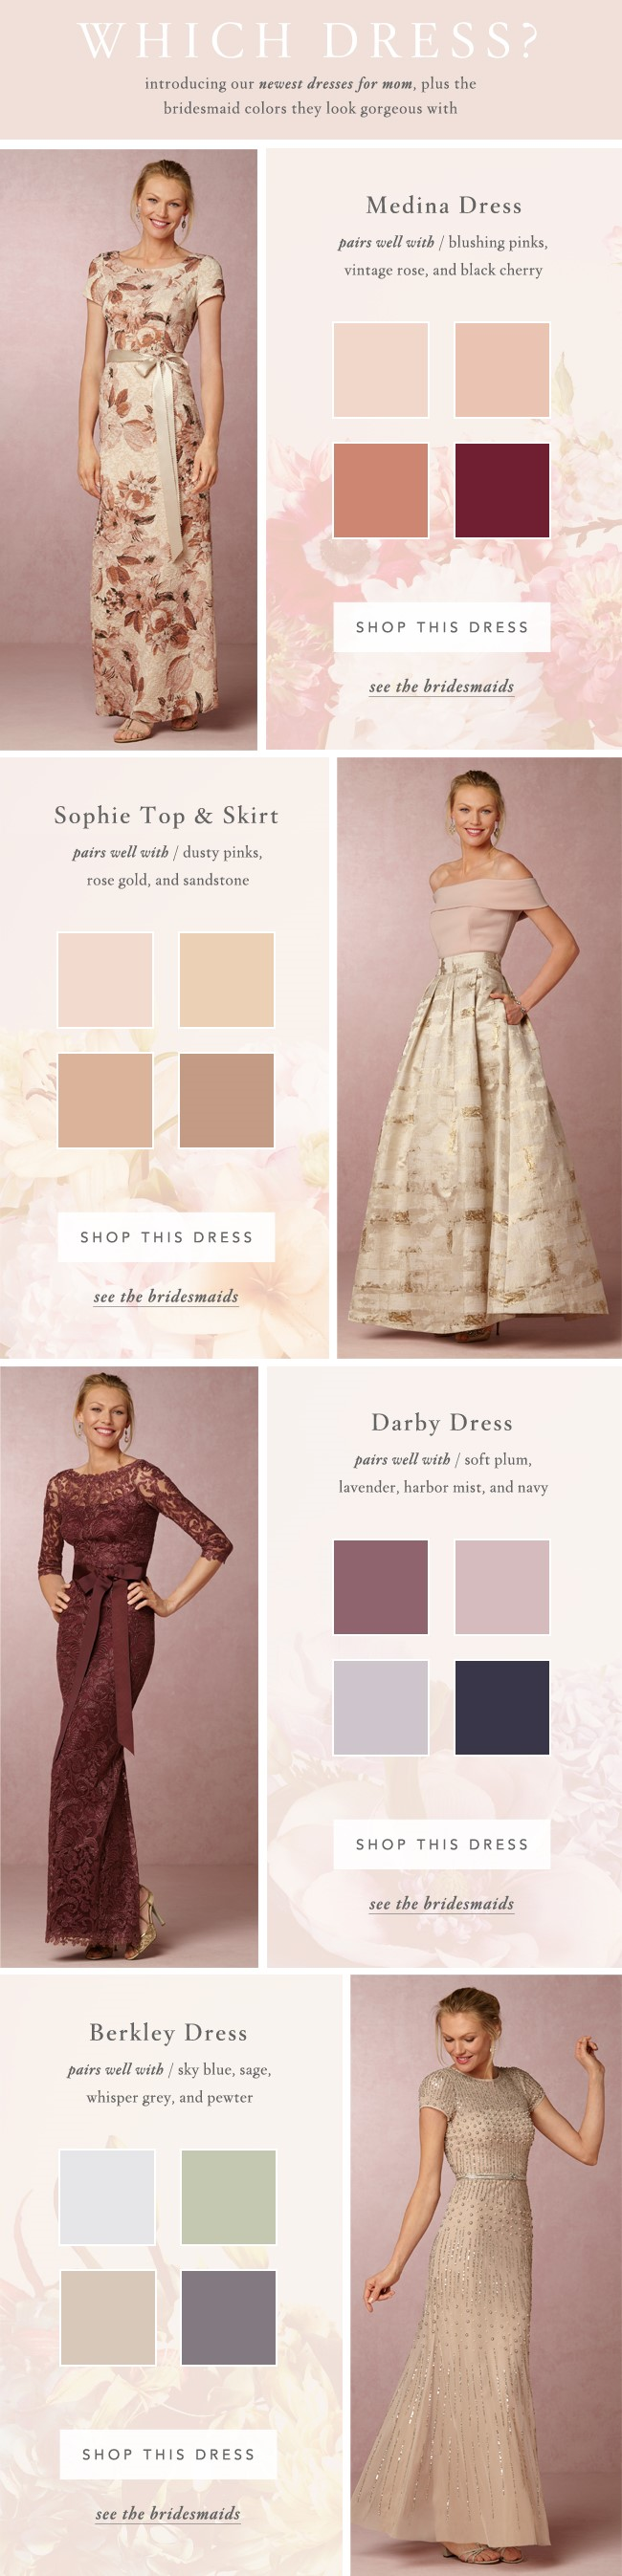 How to Coordinate Mother-of-the-Bride dresses with Bridesmaid Dresses | BHLDN Color Pairings